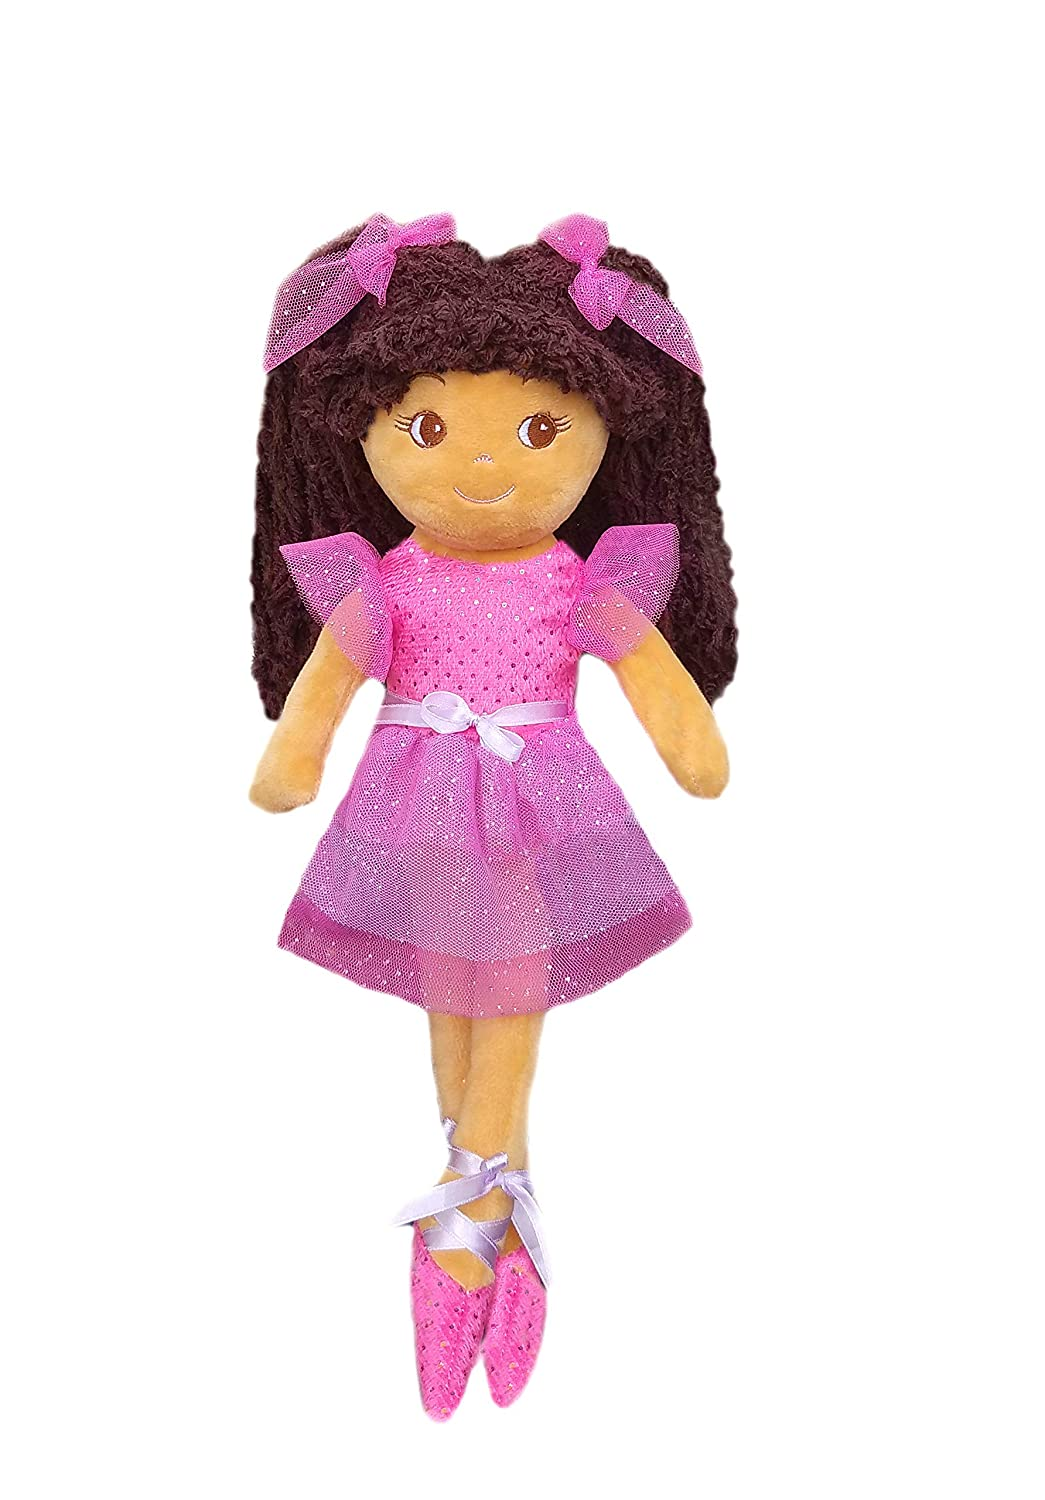 Pink tan Skin girlzndollz 600576 Elana Multicolor Ballerina Doll Purple 14